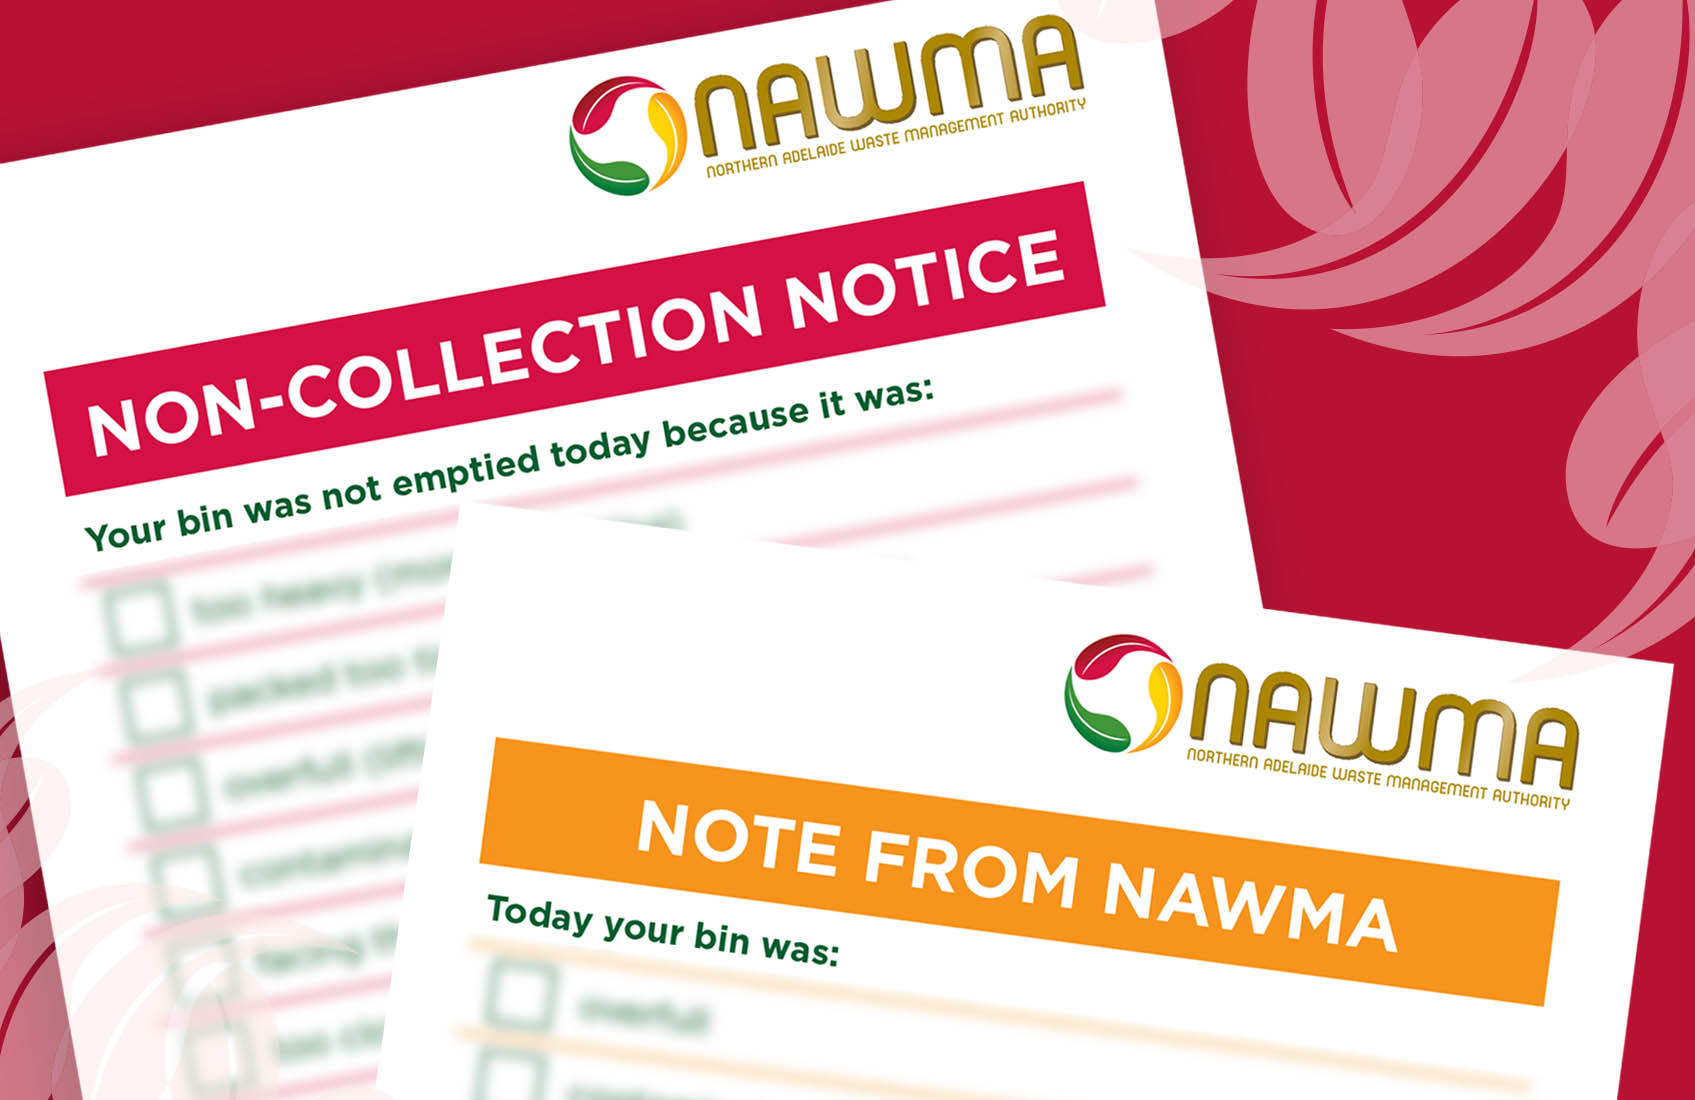 NAWMA - Was your bin stickered?